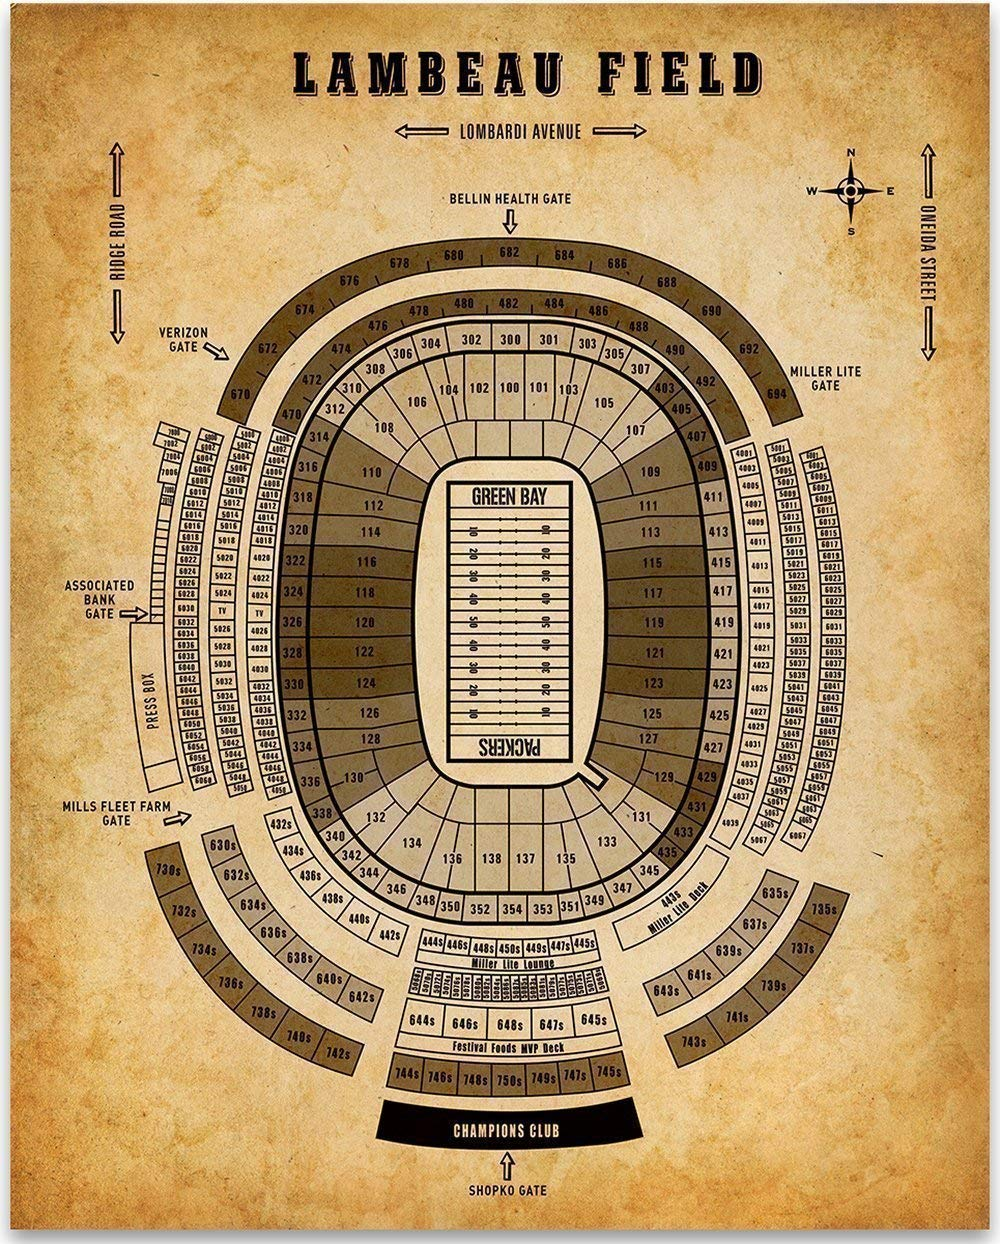 Lambeau Field of Green Bay Football Seating Chart - 11x14 Unframed Art Print - Great Sports Bar Decor and Gift Under $15 for Football Fans